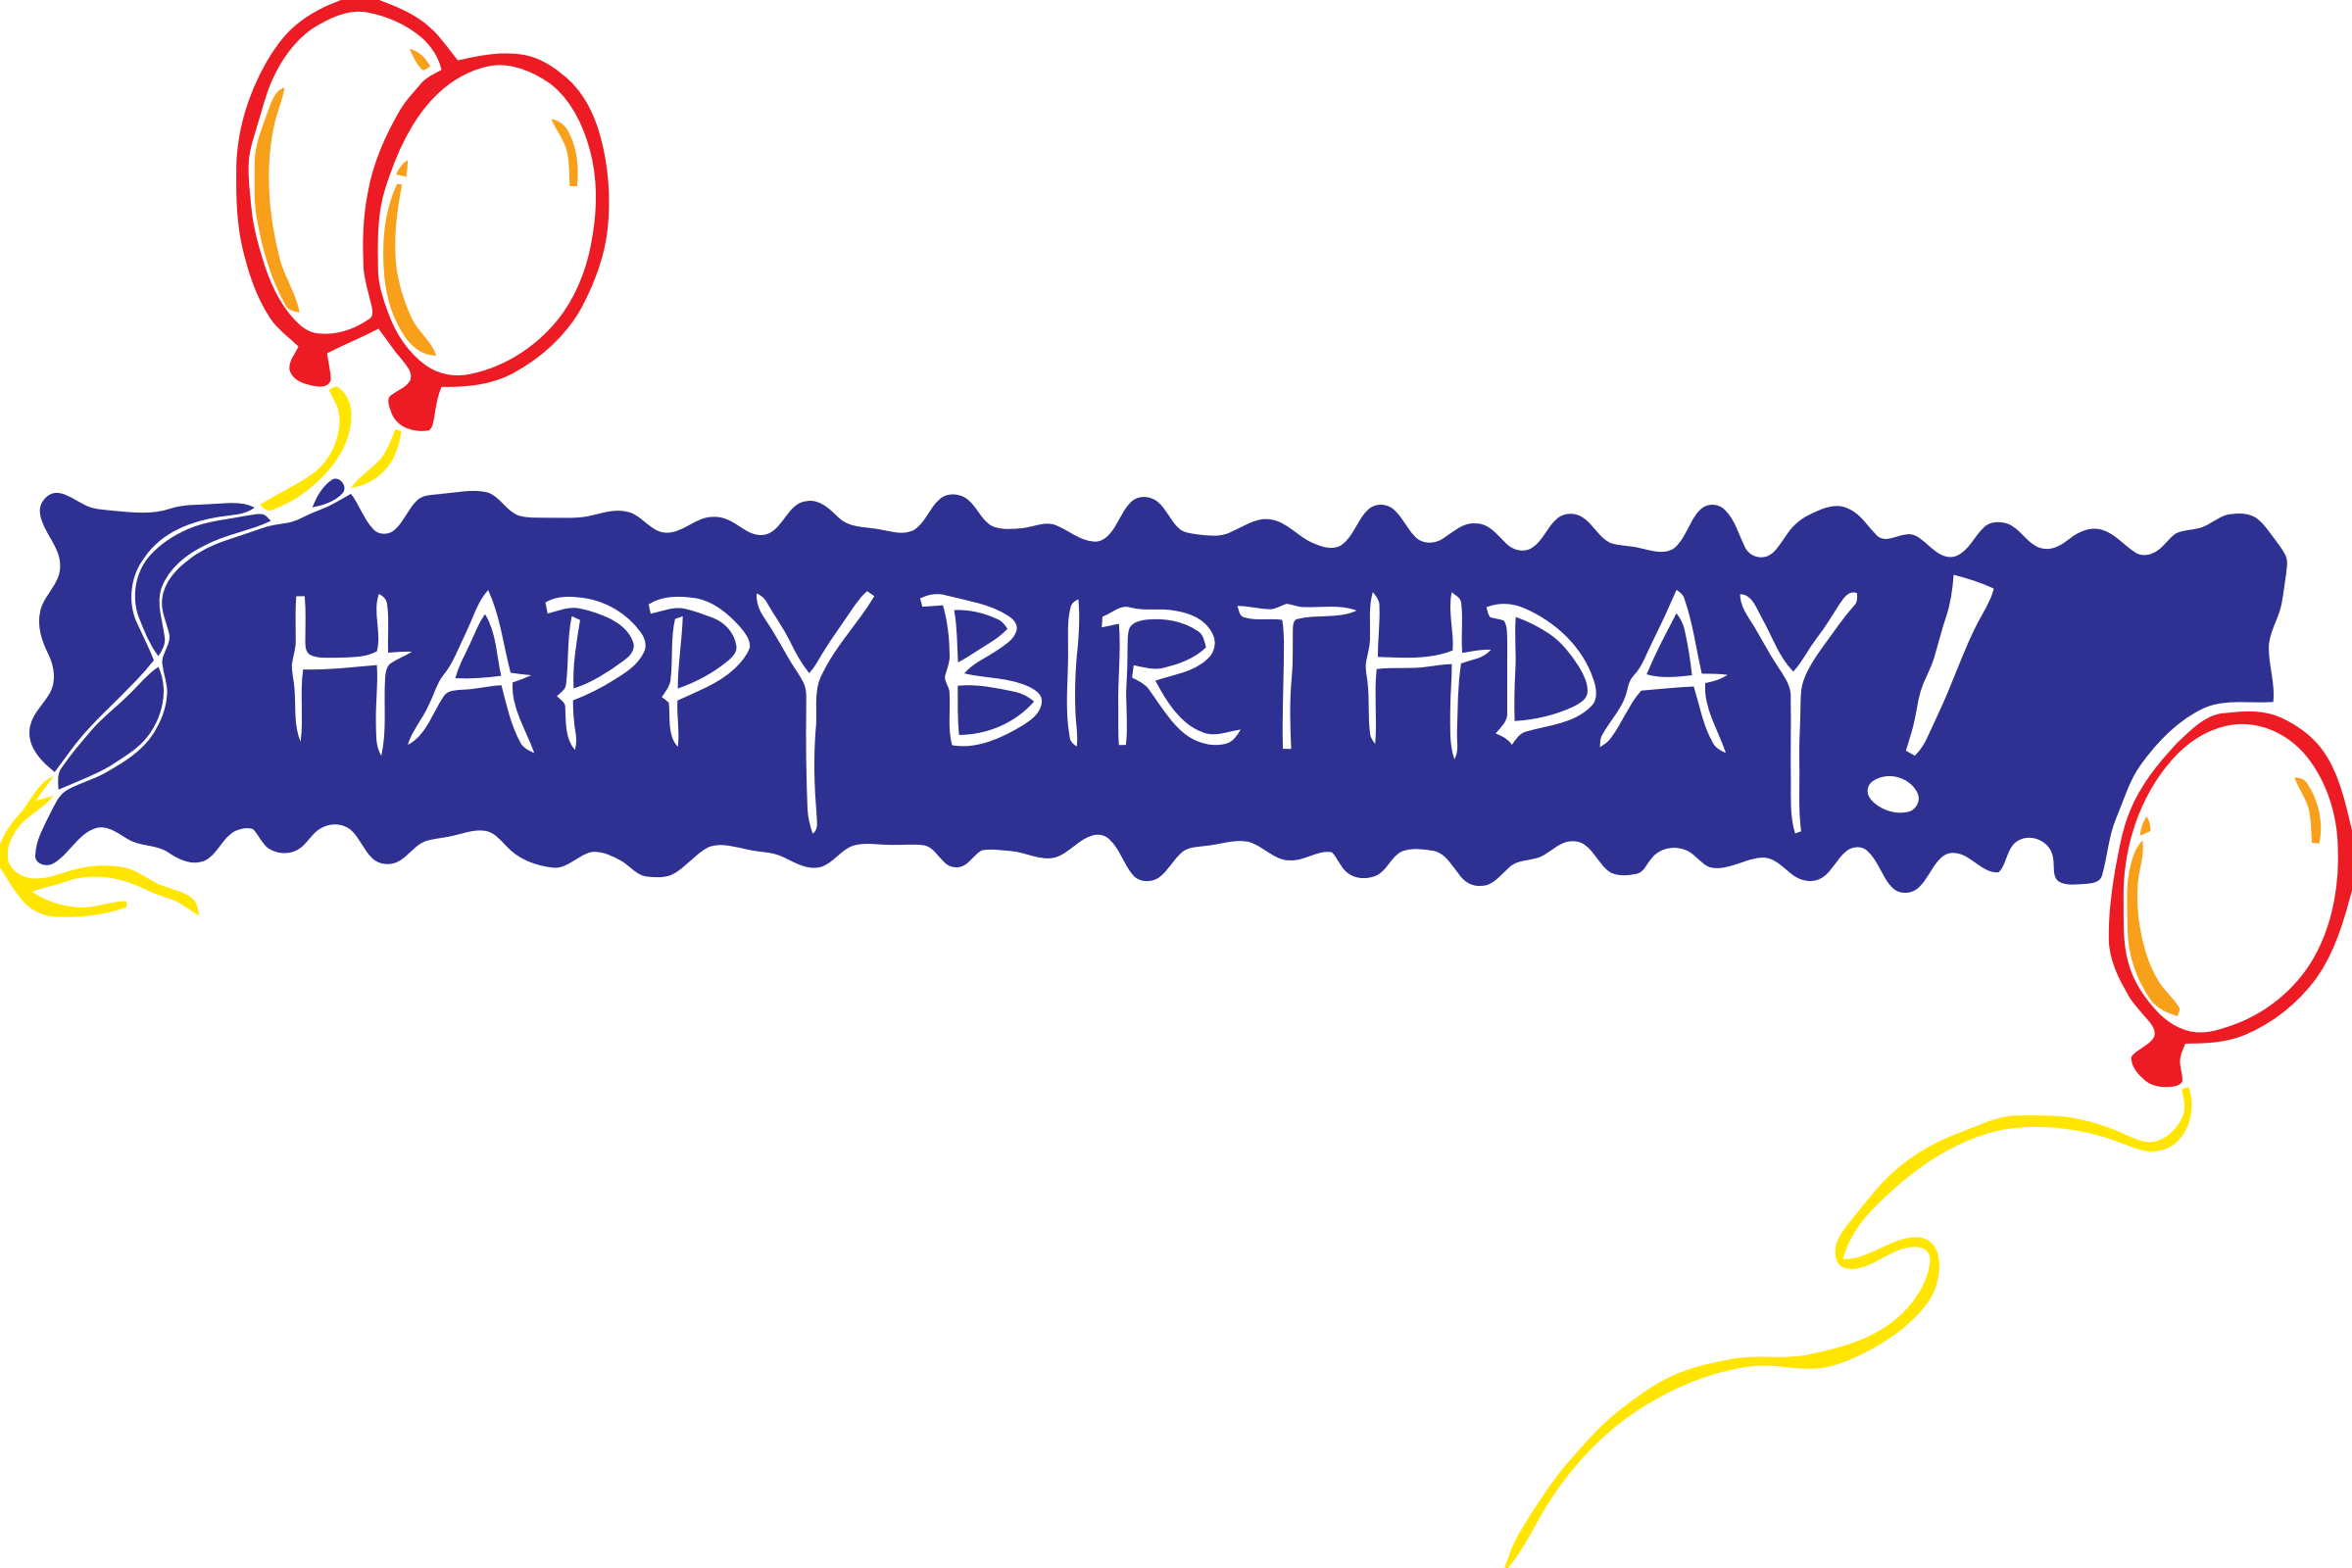 Birthday big image png. Congratulations clipart banner